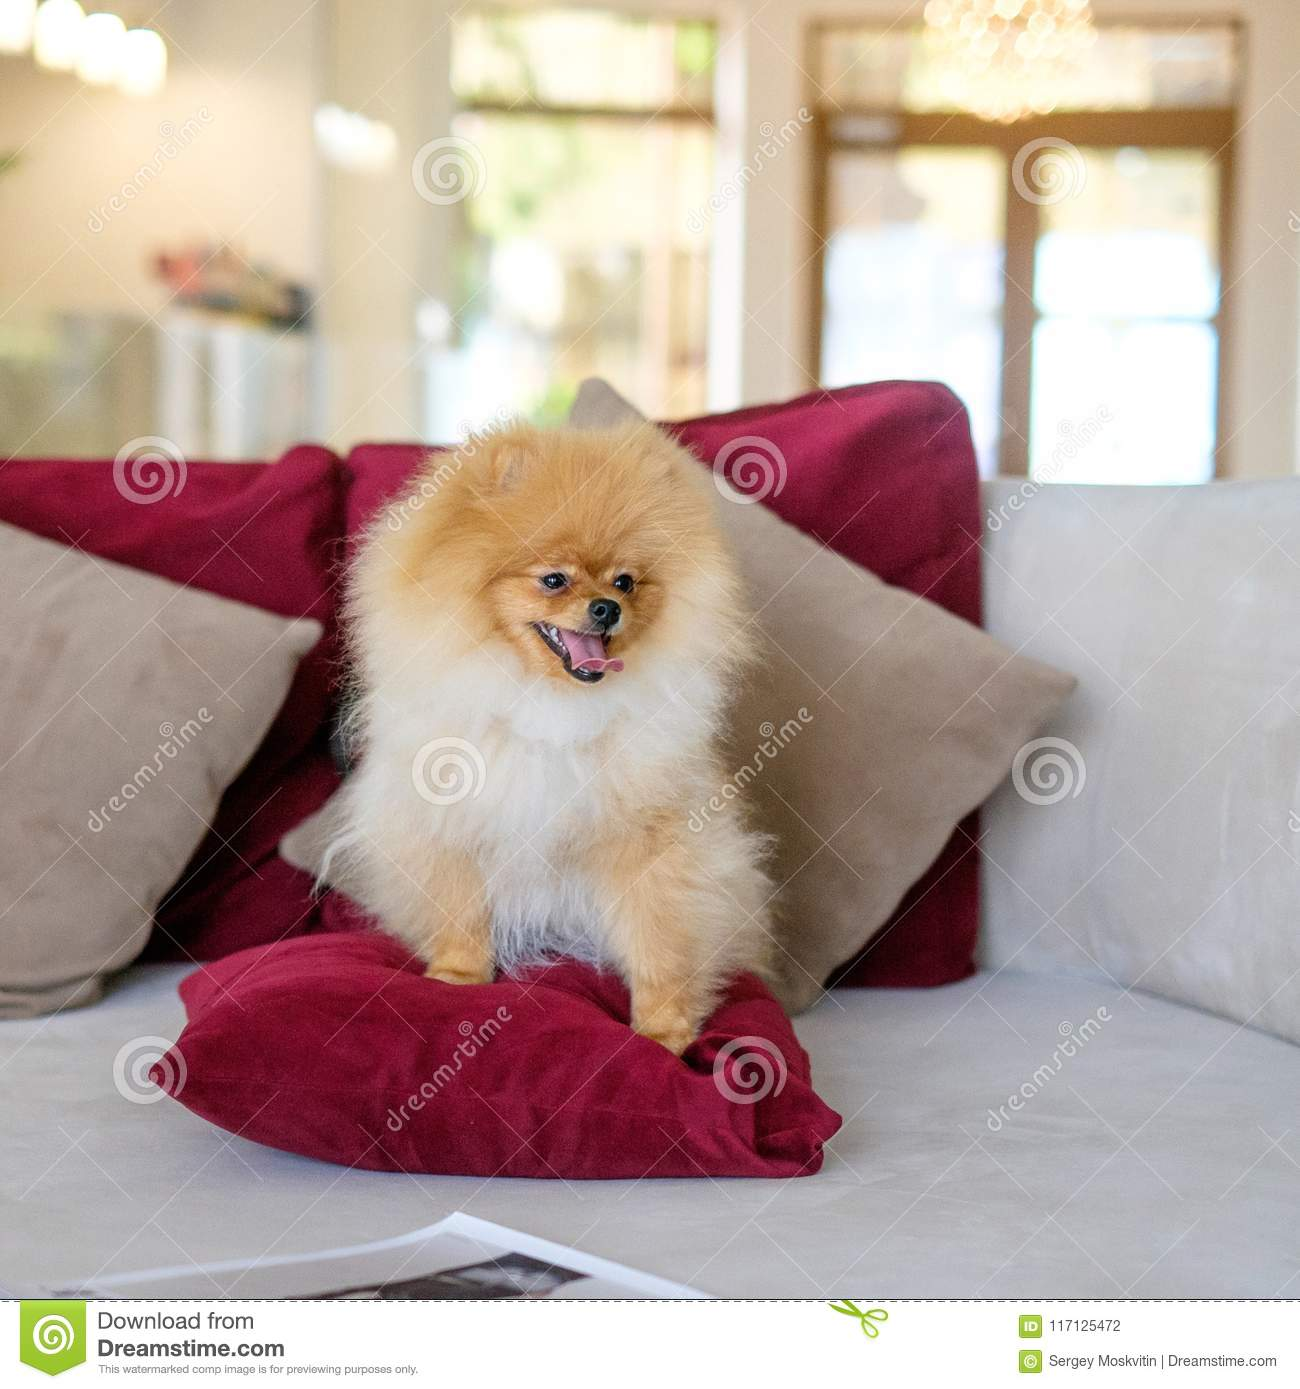 Dog Pomeranian Spitz Sits On A Purple Couch Stock Photo - Image of